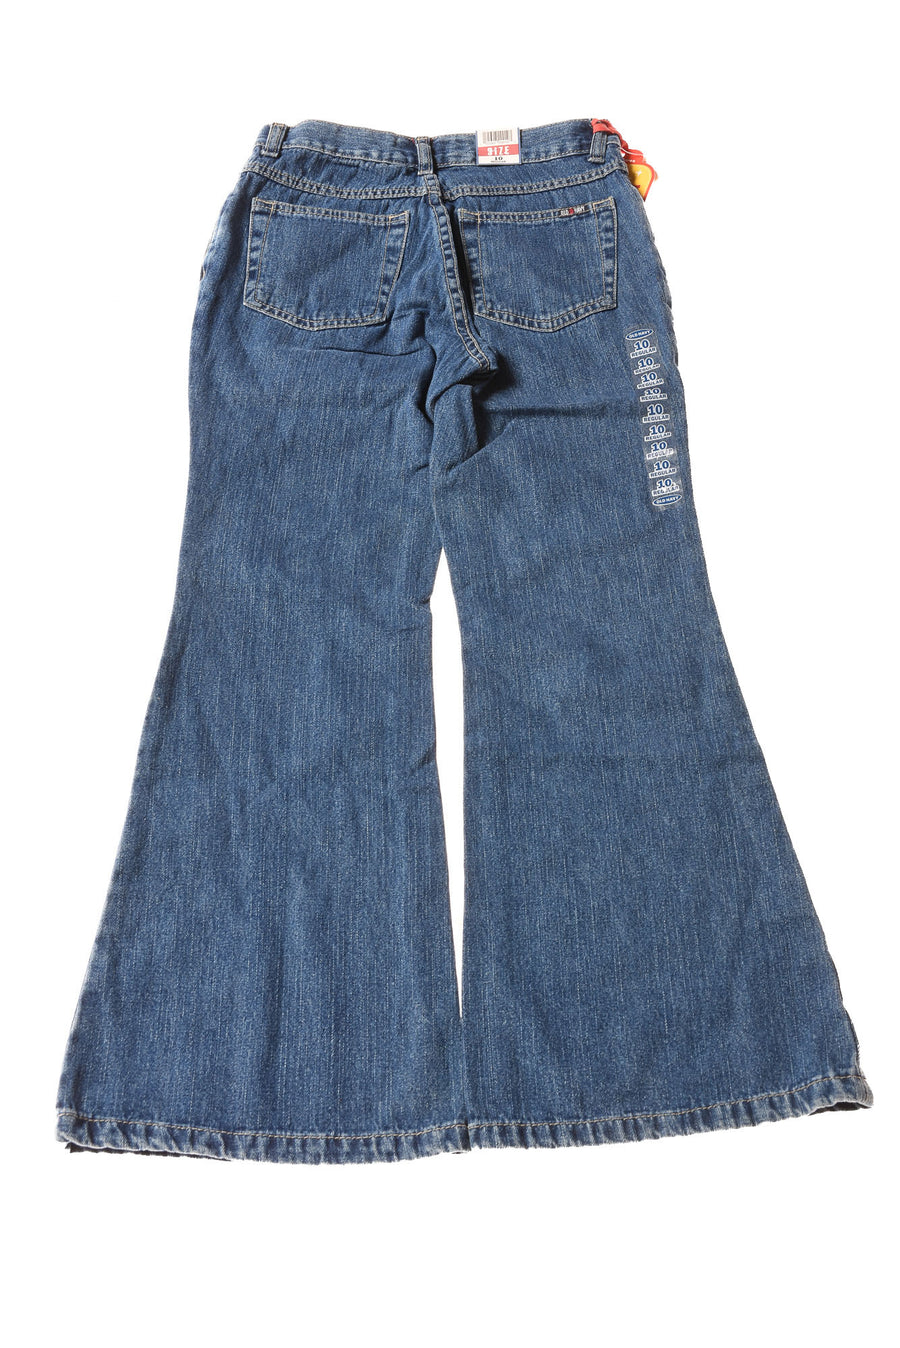 Girl's Jeans By Old Navy